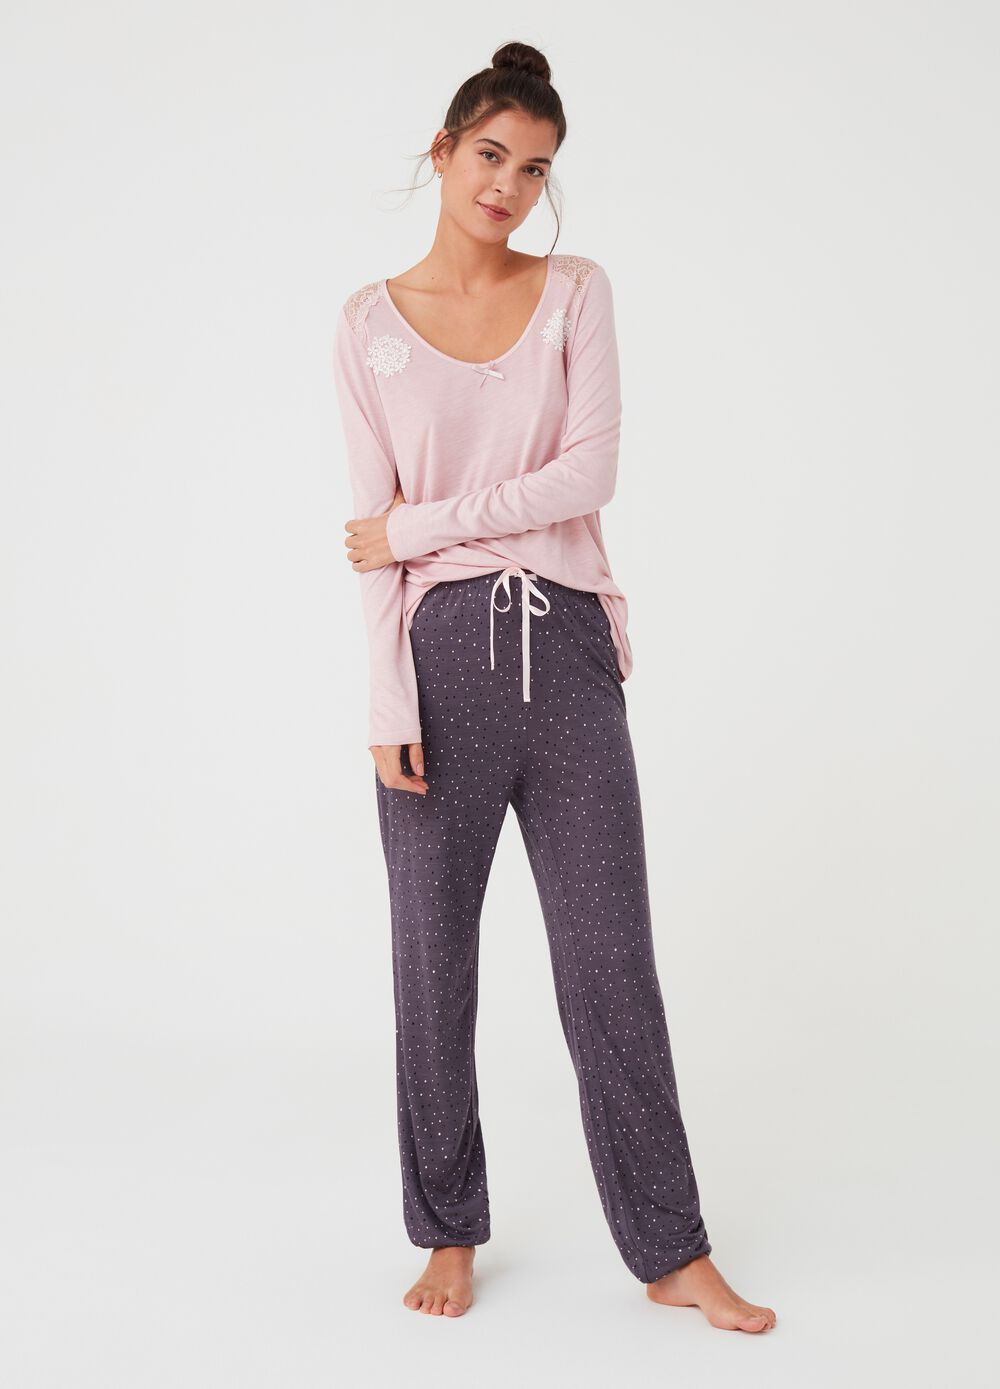 Pyjama trousers with polka dot pattern